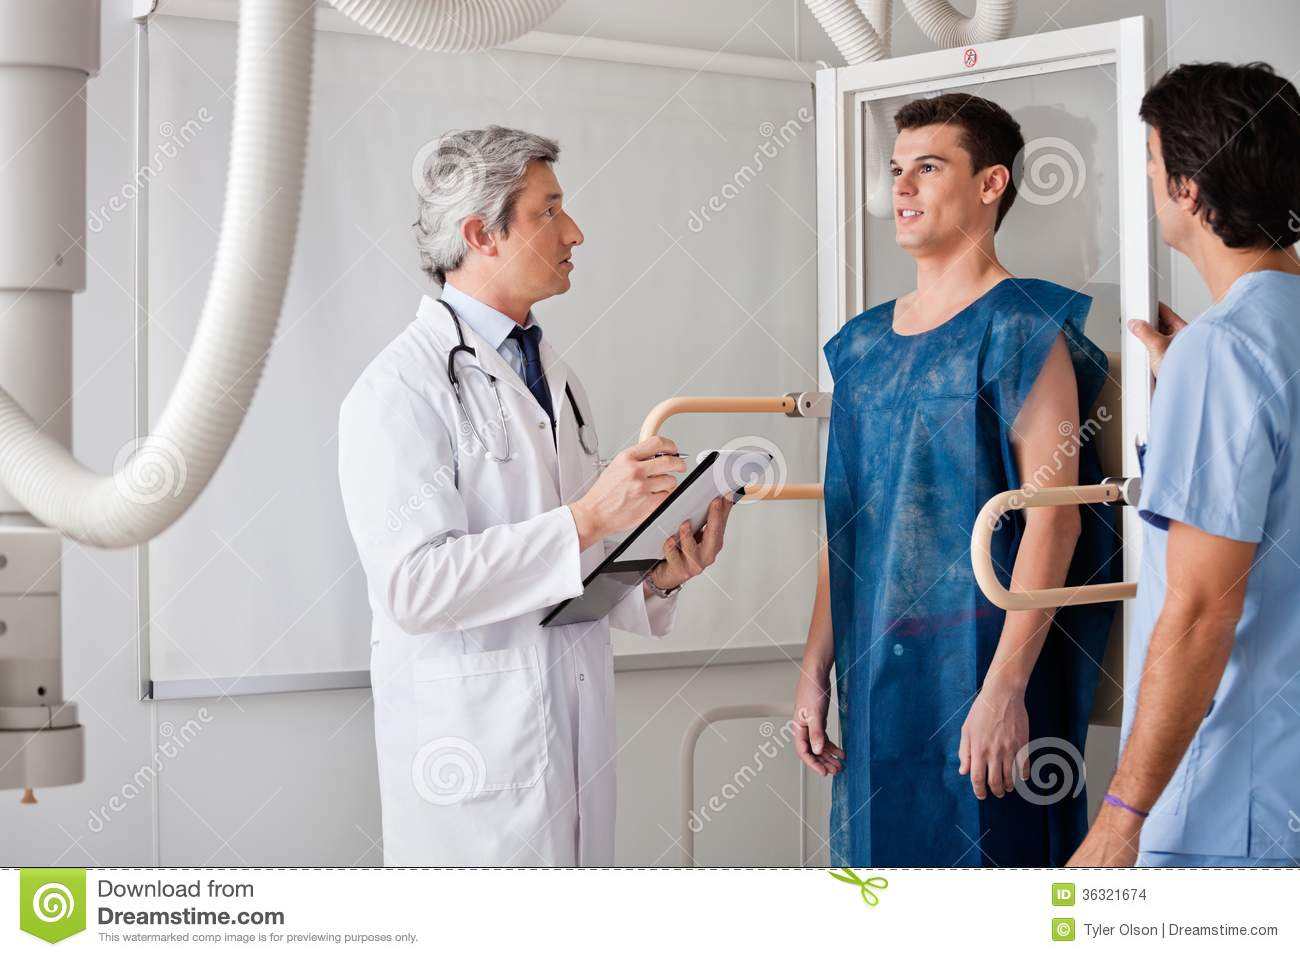 radiologists conducting x-ray on male patient stock photo - image of